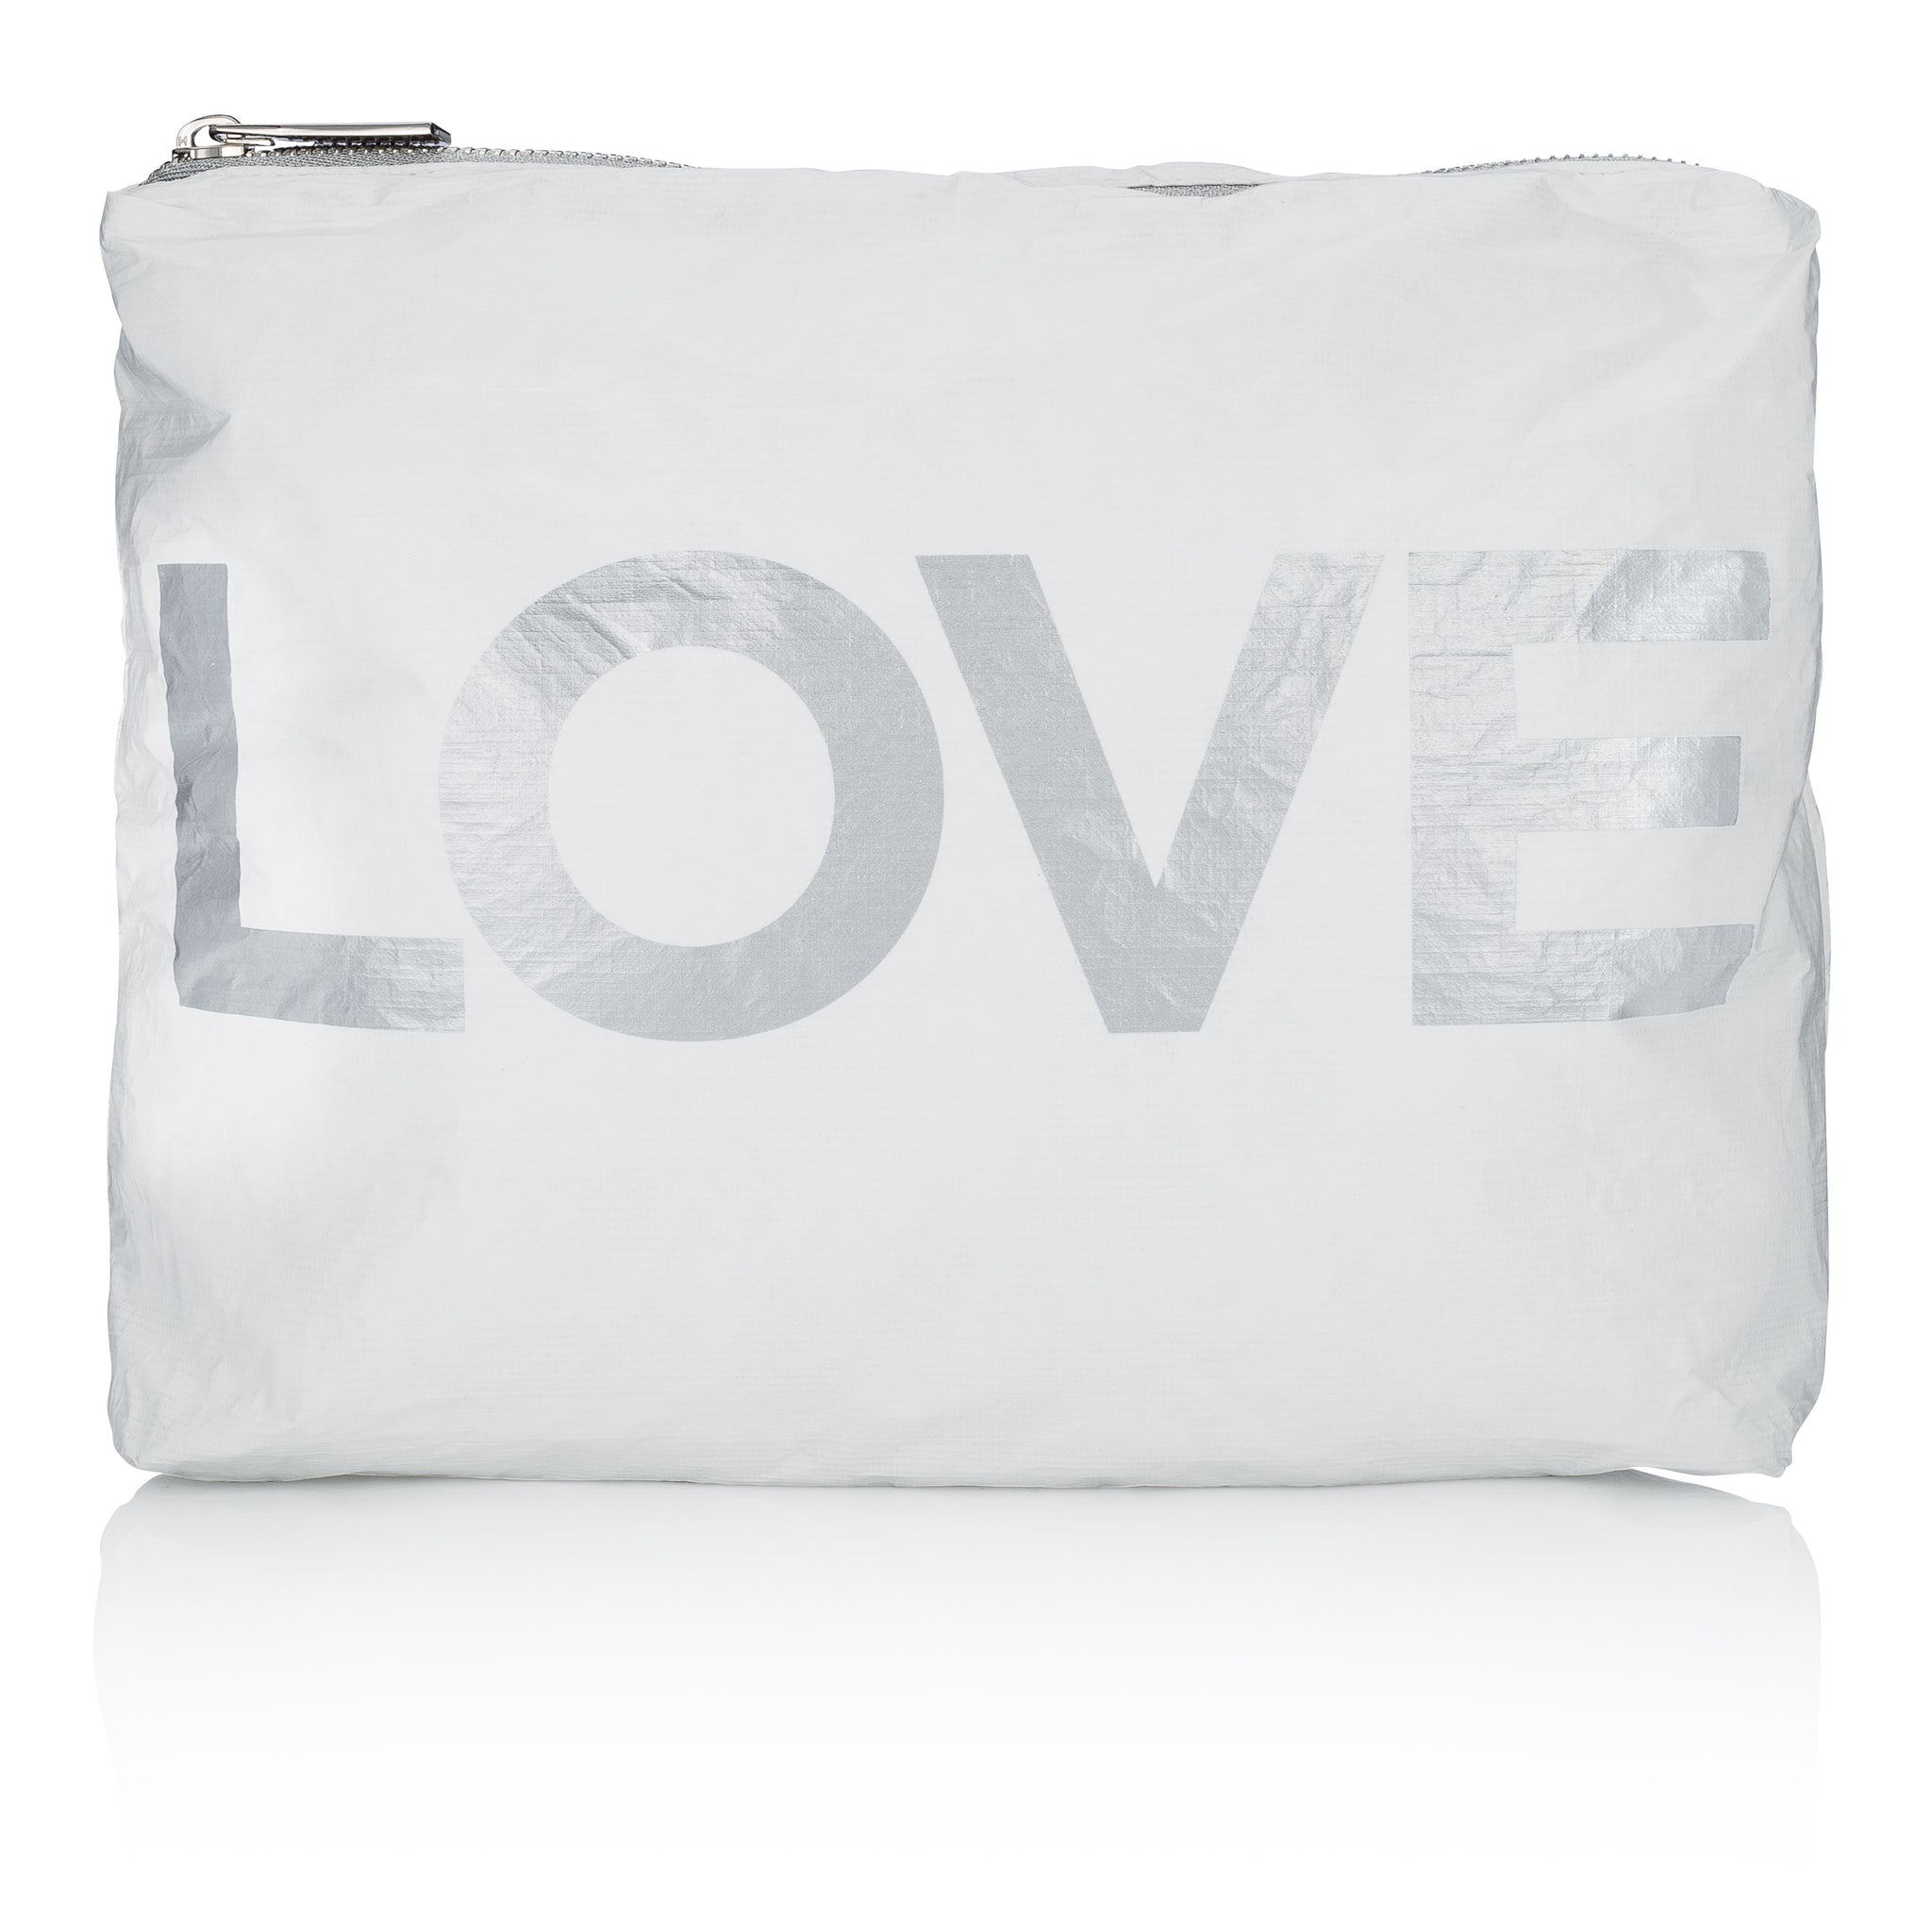 "Makeup Bag - Beach Bag - Travel Pack - Medium Pack - White with Silver ""LOVE"""